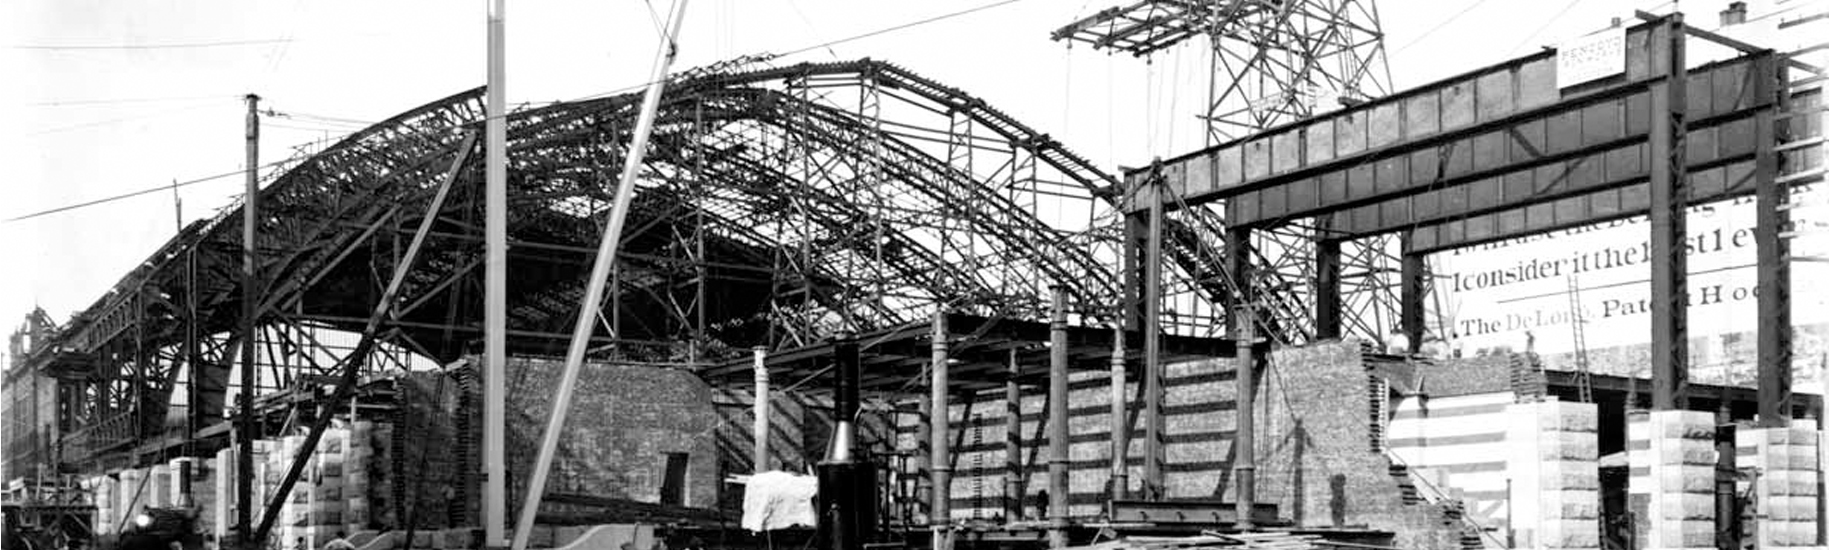 Railroad terminal under construction, only the steel frame is complete